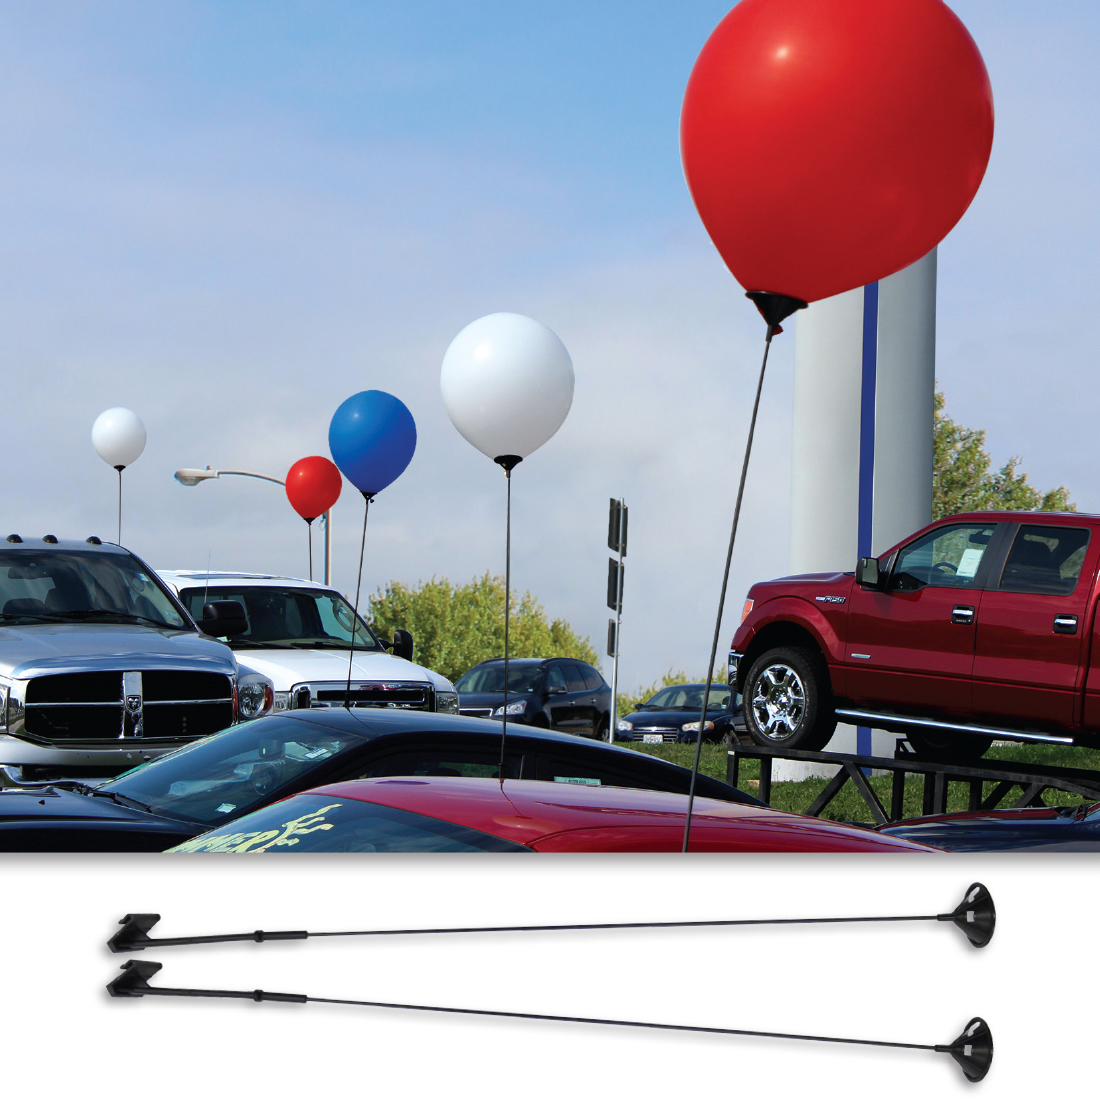 Car Window Balloon Holder For 17 In Latex Balloons 2 Piece